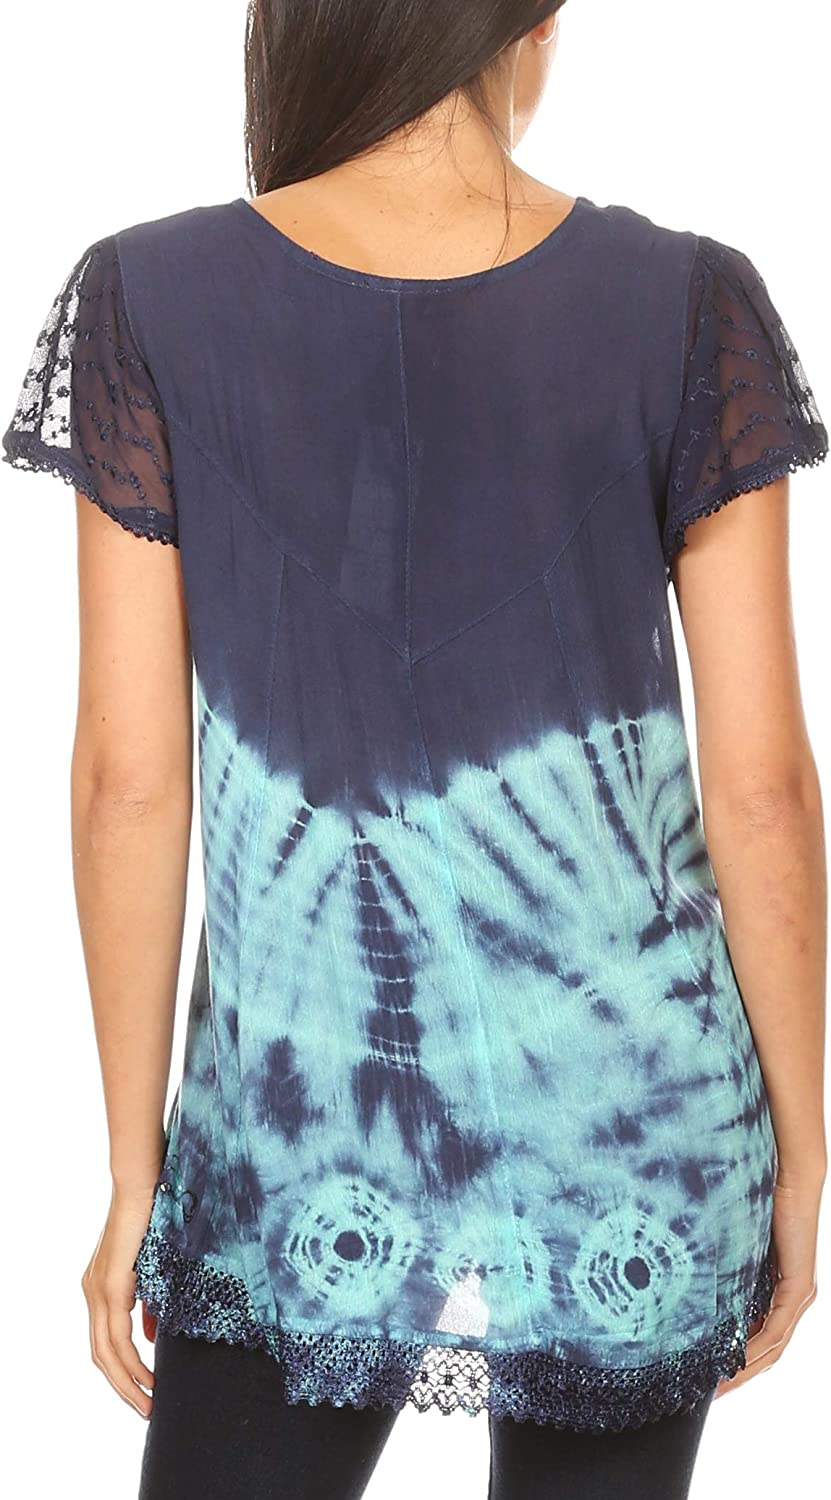 Sakkas Josea Relaxed Fit Tie Dye Embroidered Crepe Cap Sleeve Blouse | Cover Up 19777-navymint